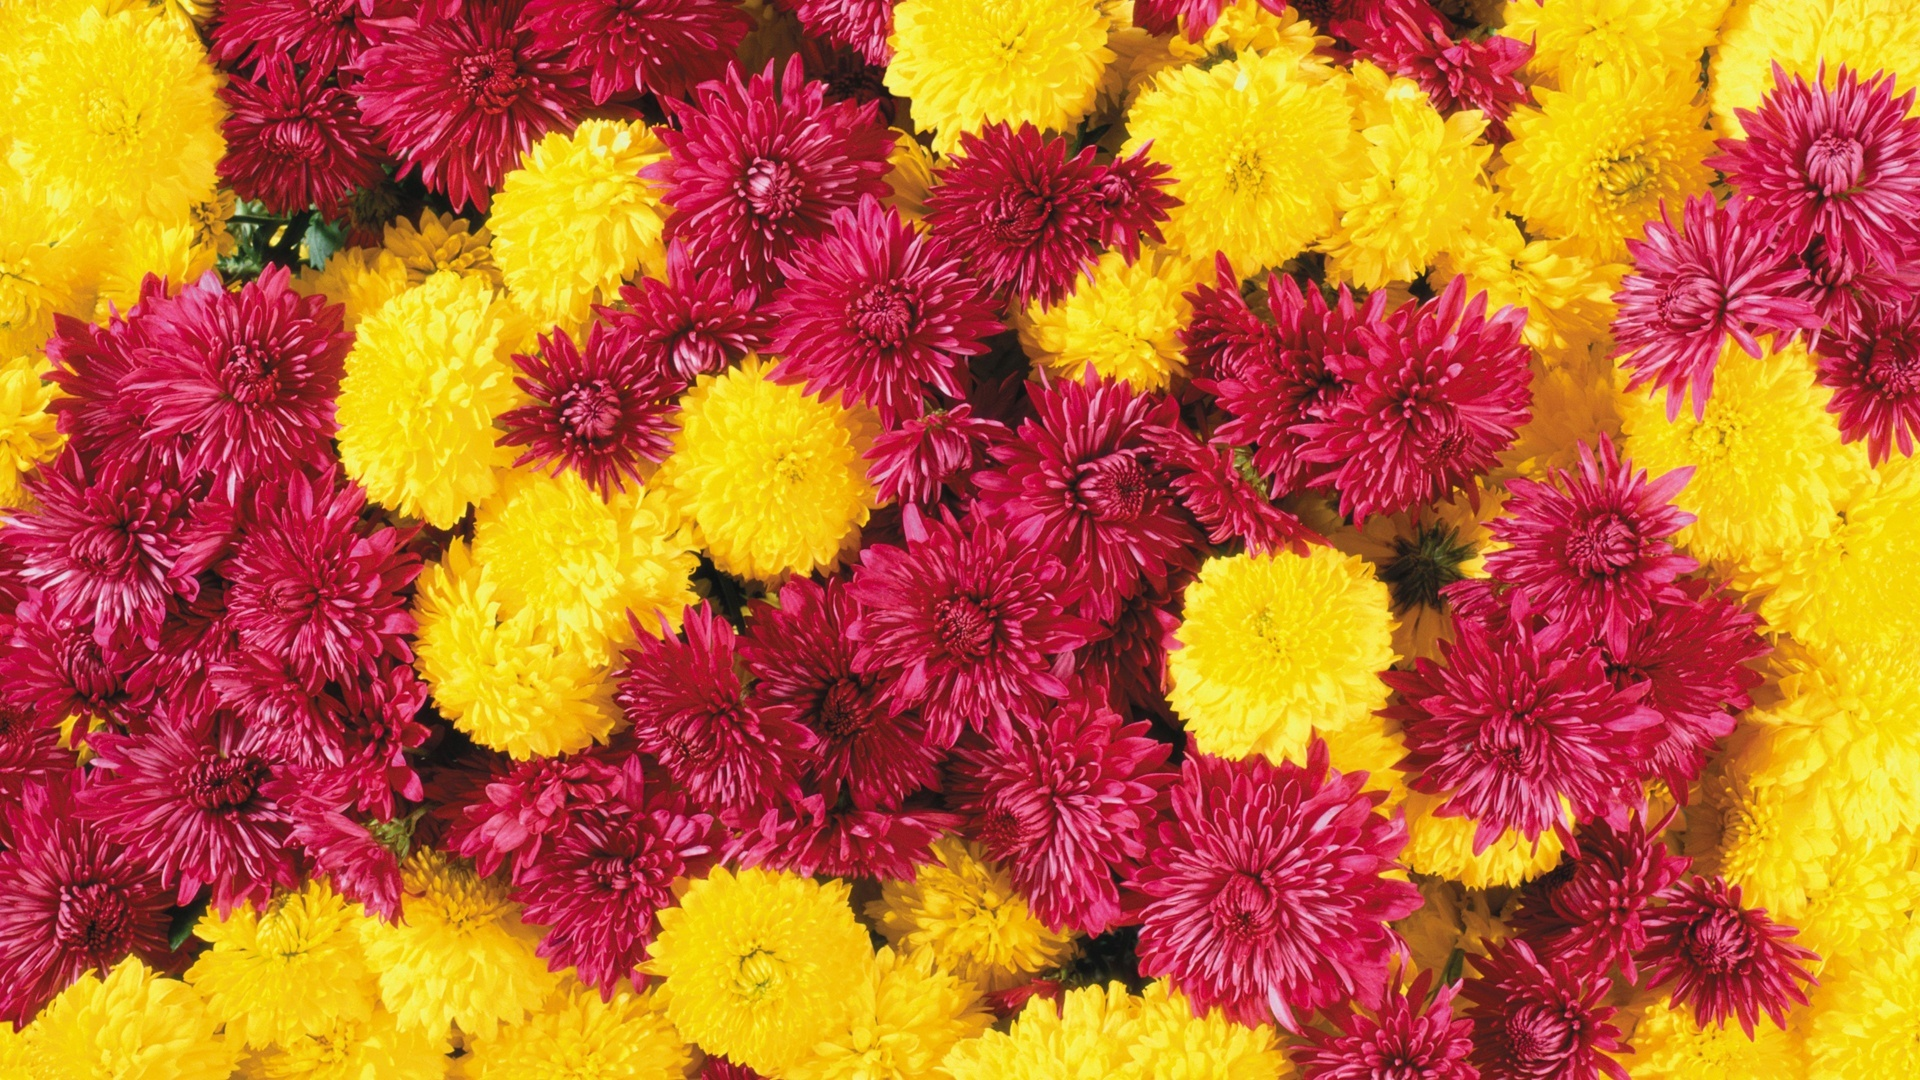 25 Free HD Flowers Wallpapers